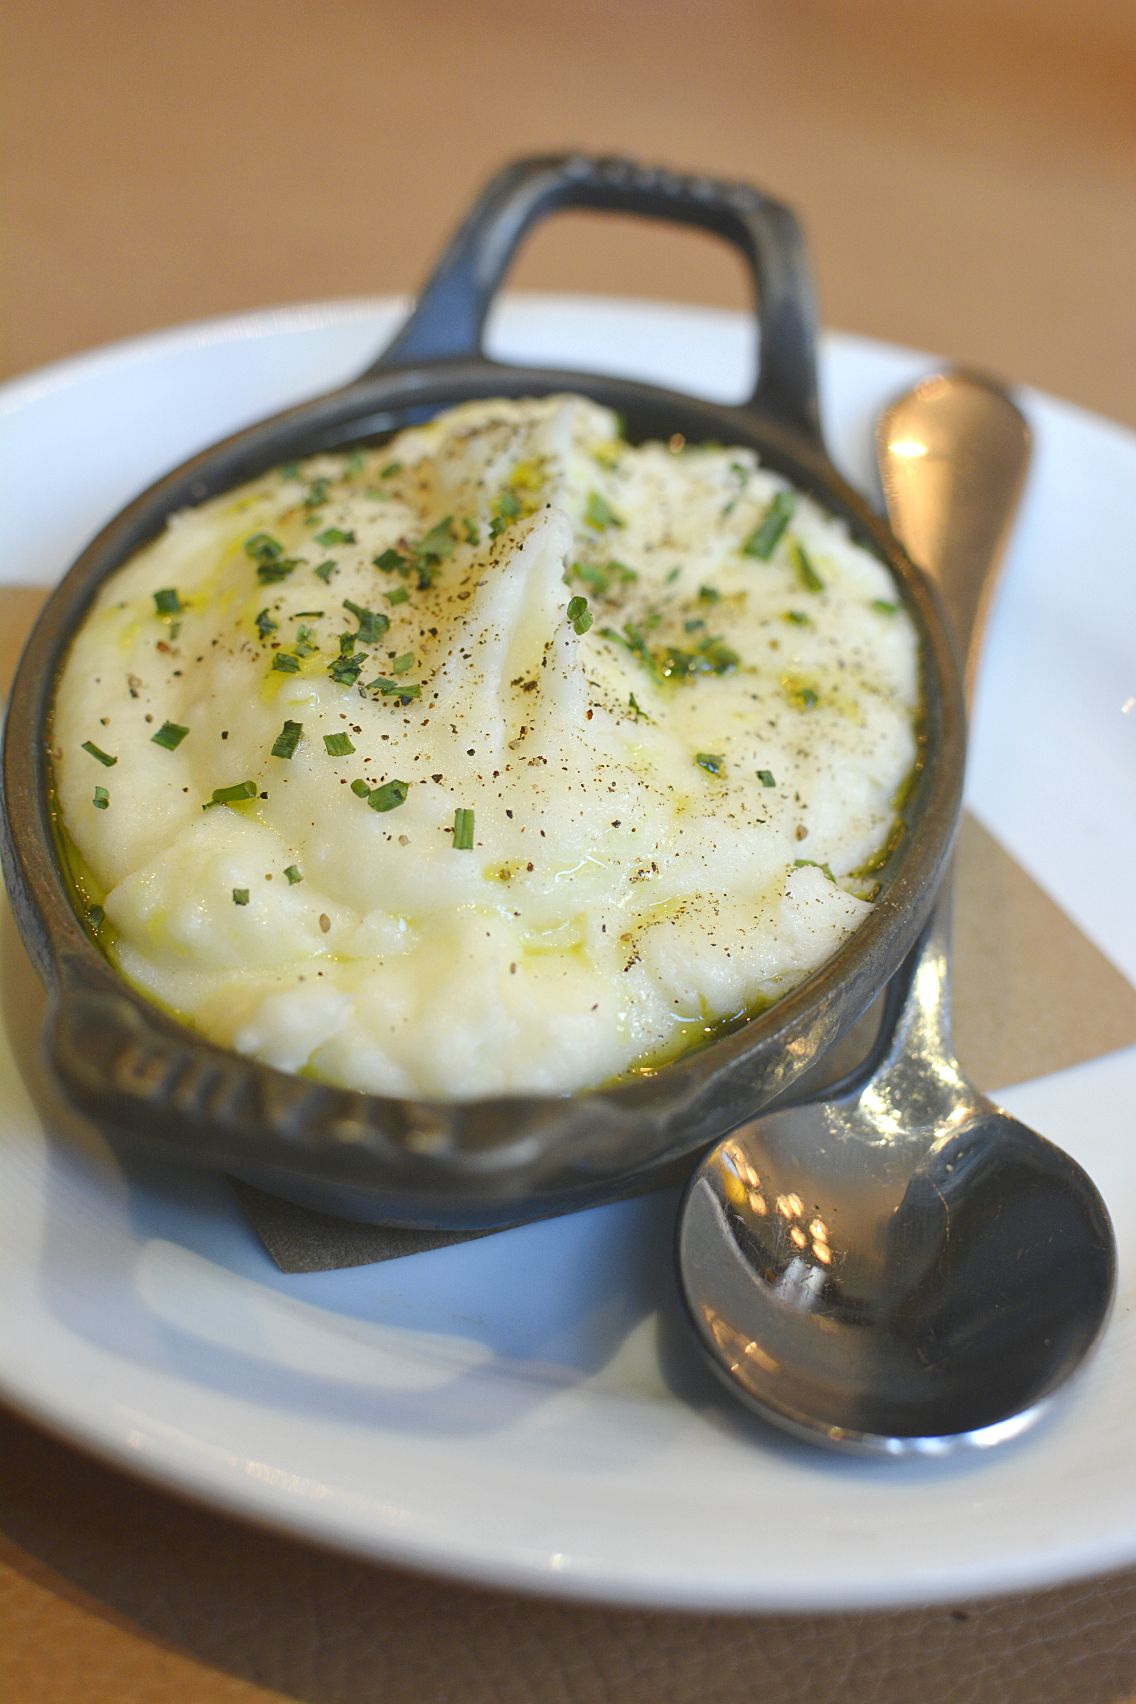 David Burke's Primehouse Chicago Basil Whipped Potatoes